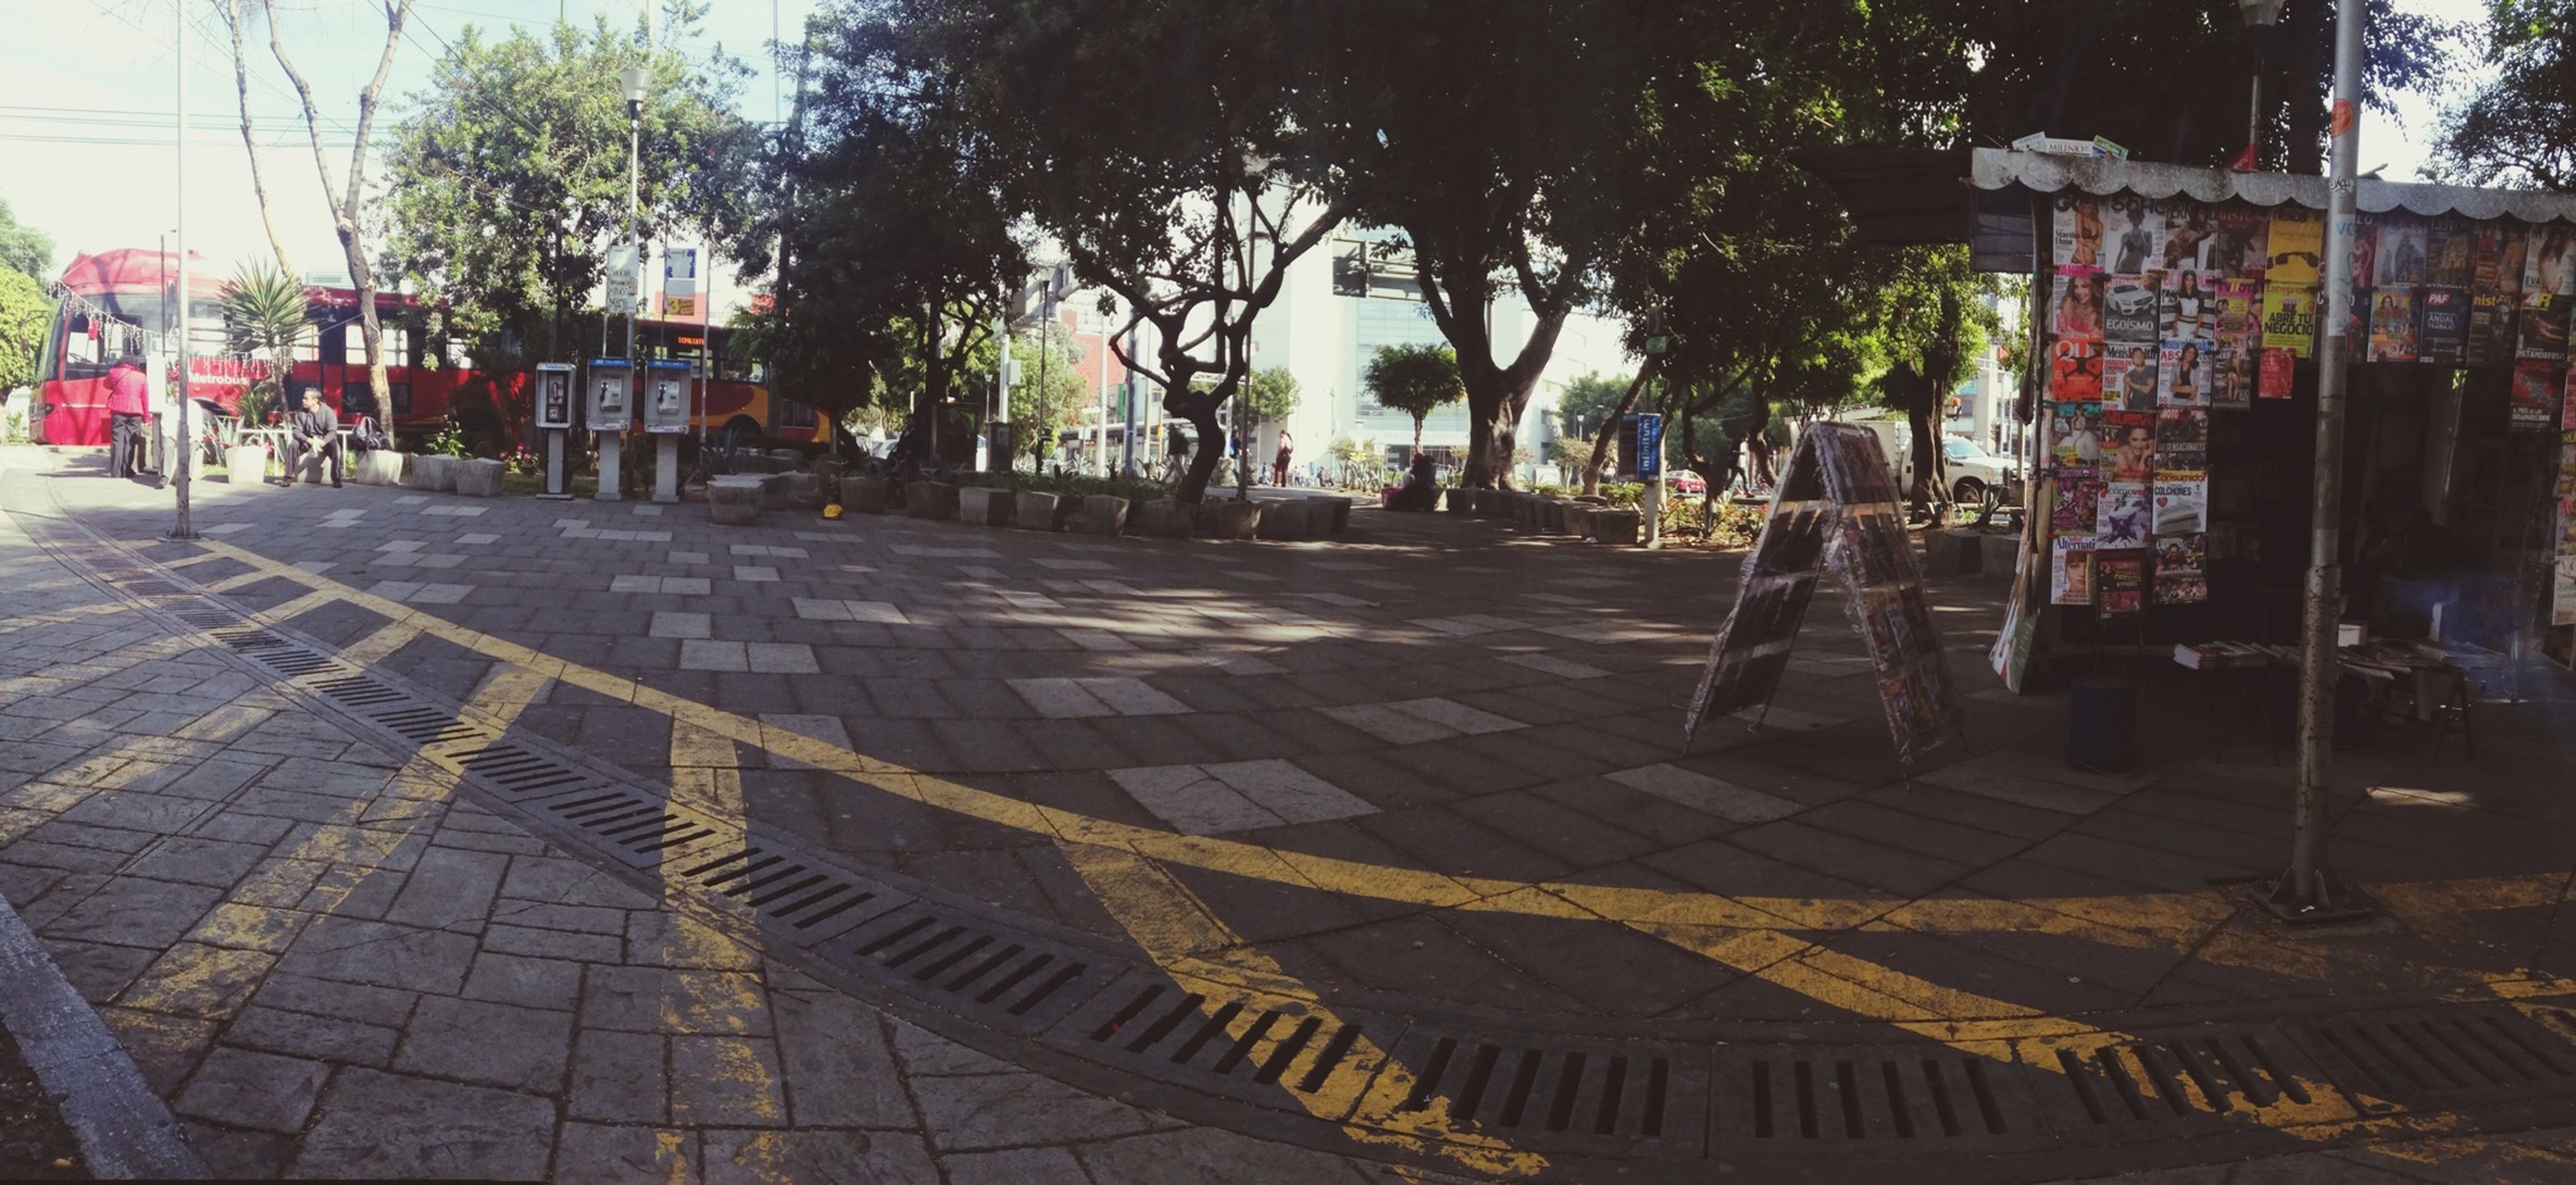 tree, building exterior, city, text, street, architecture, incidental people, built structure, sidewalk, sunlight, outdoors, city life, western script, shadow, communication, day, cobblestone, footpath, paving stone, non-western script